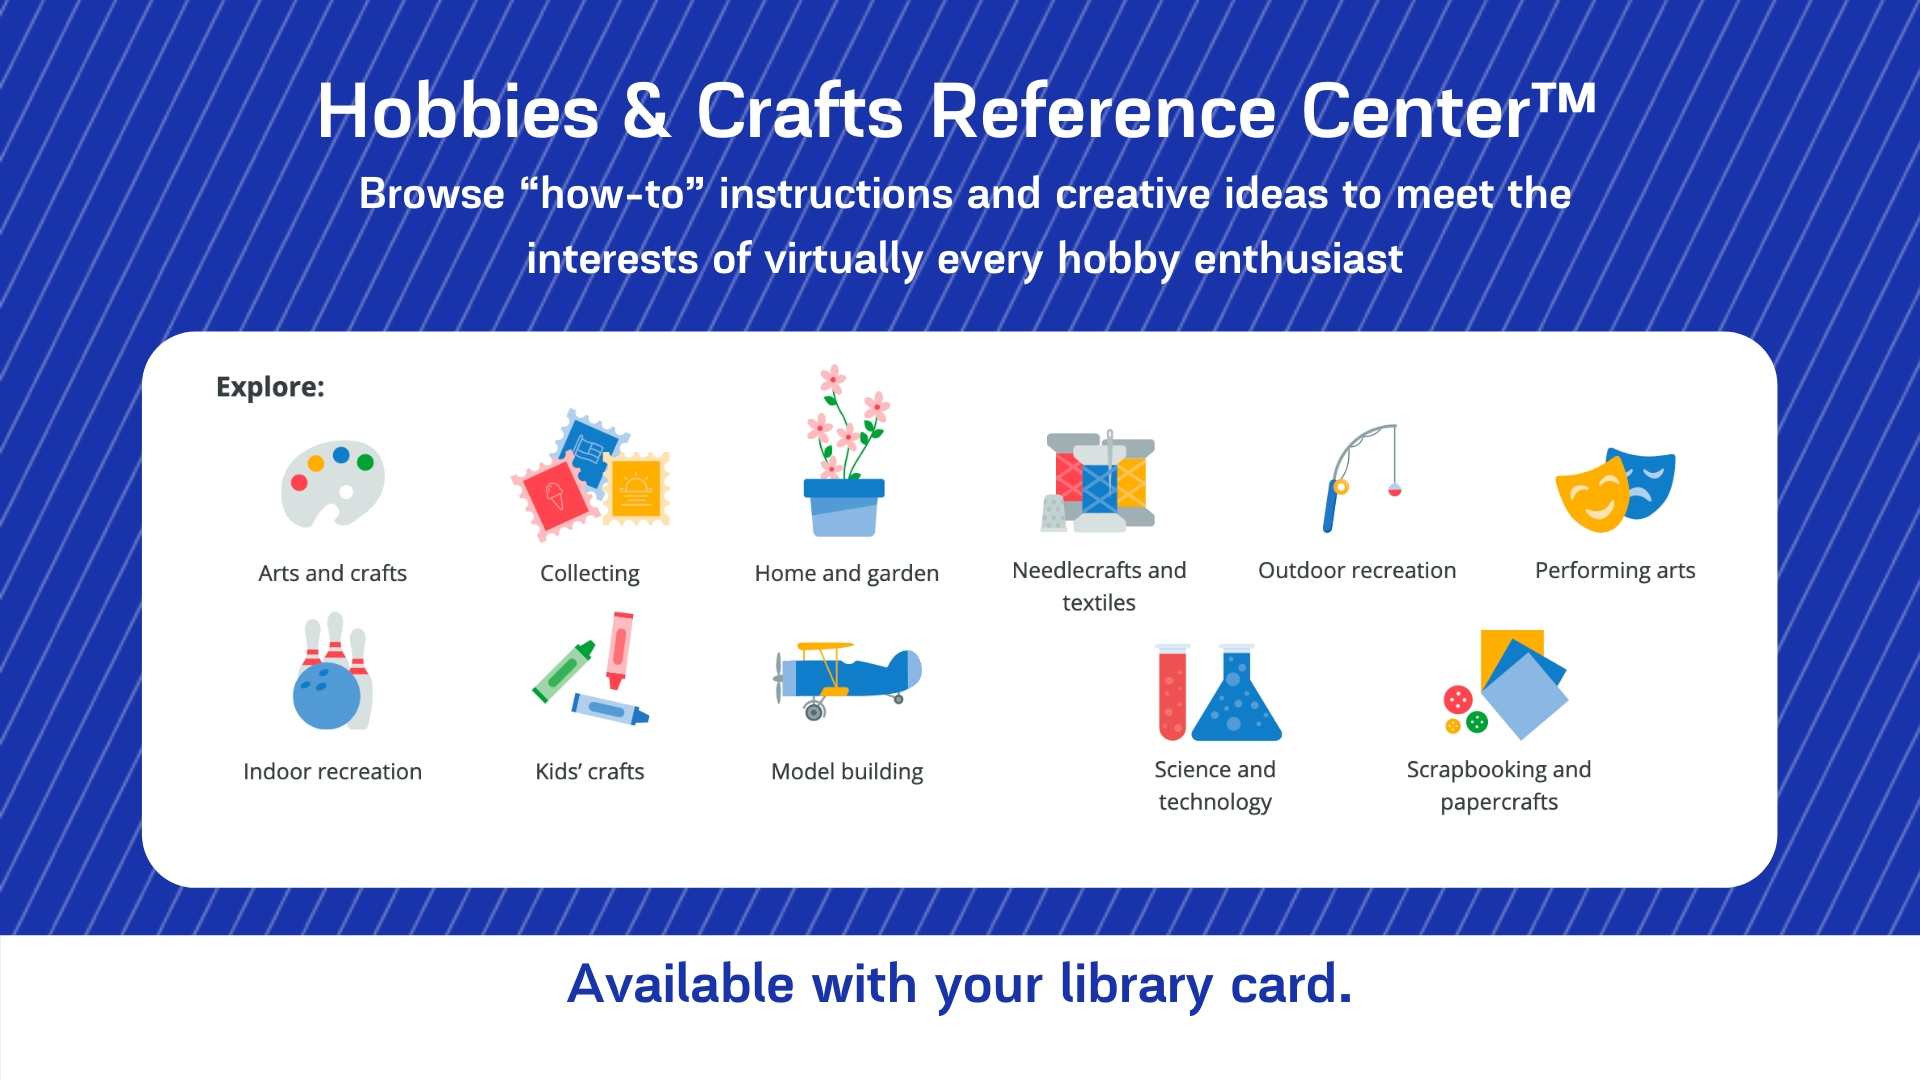 A graphic advertising the Hobbies & Crafts Reference Center for digital signage